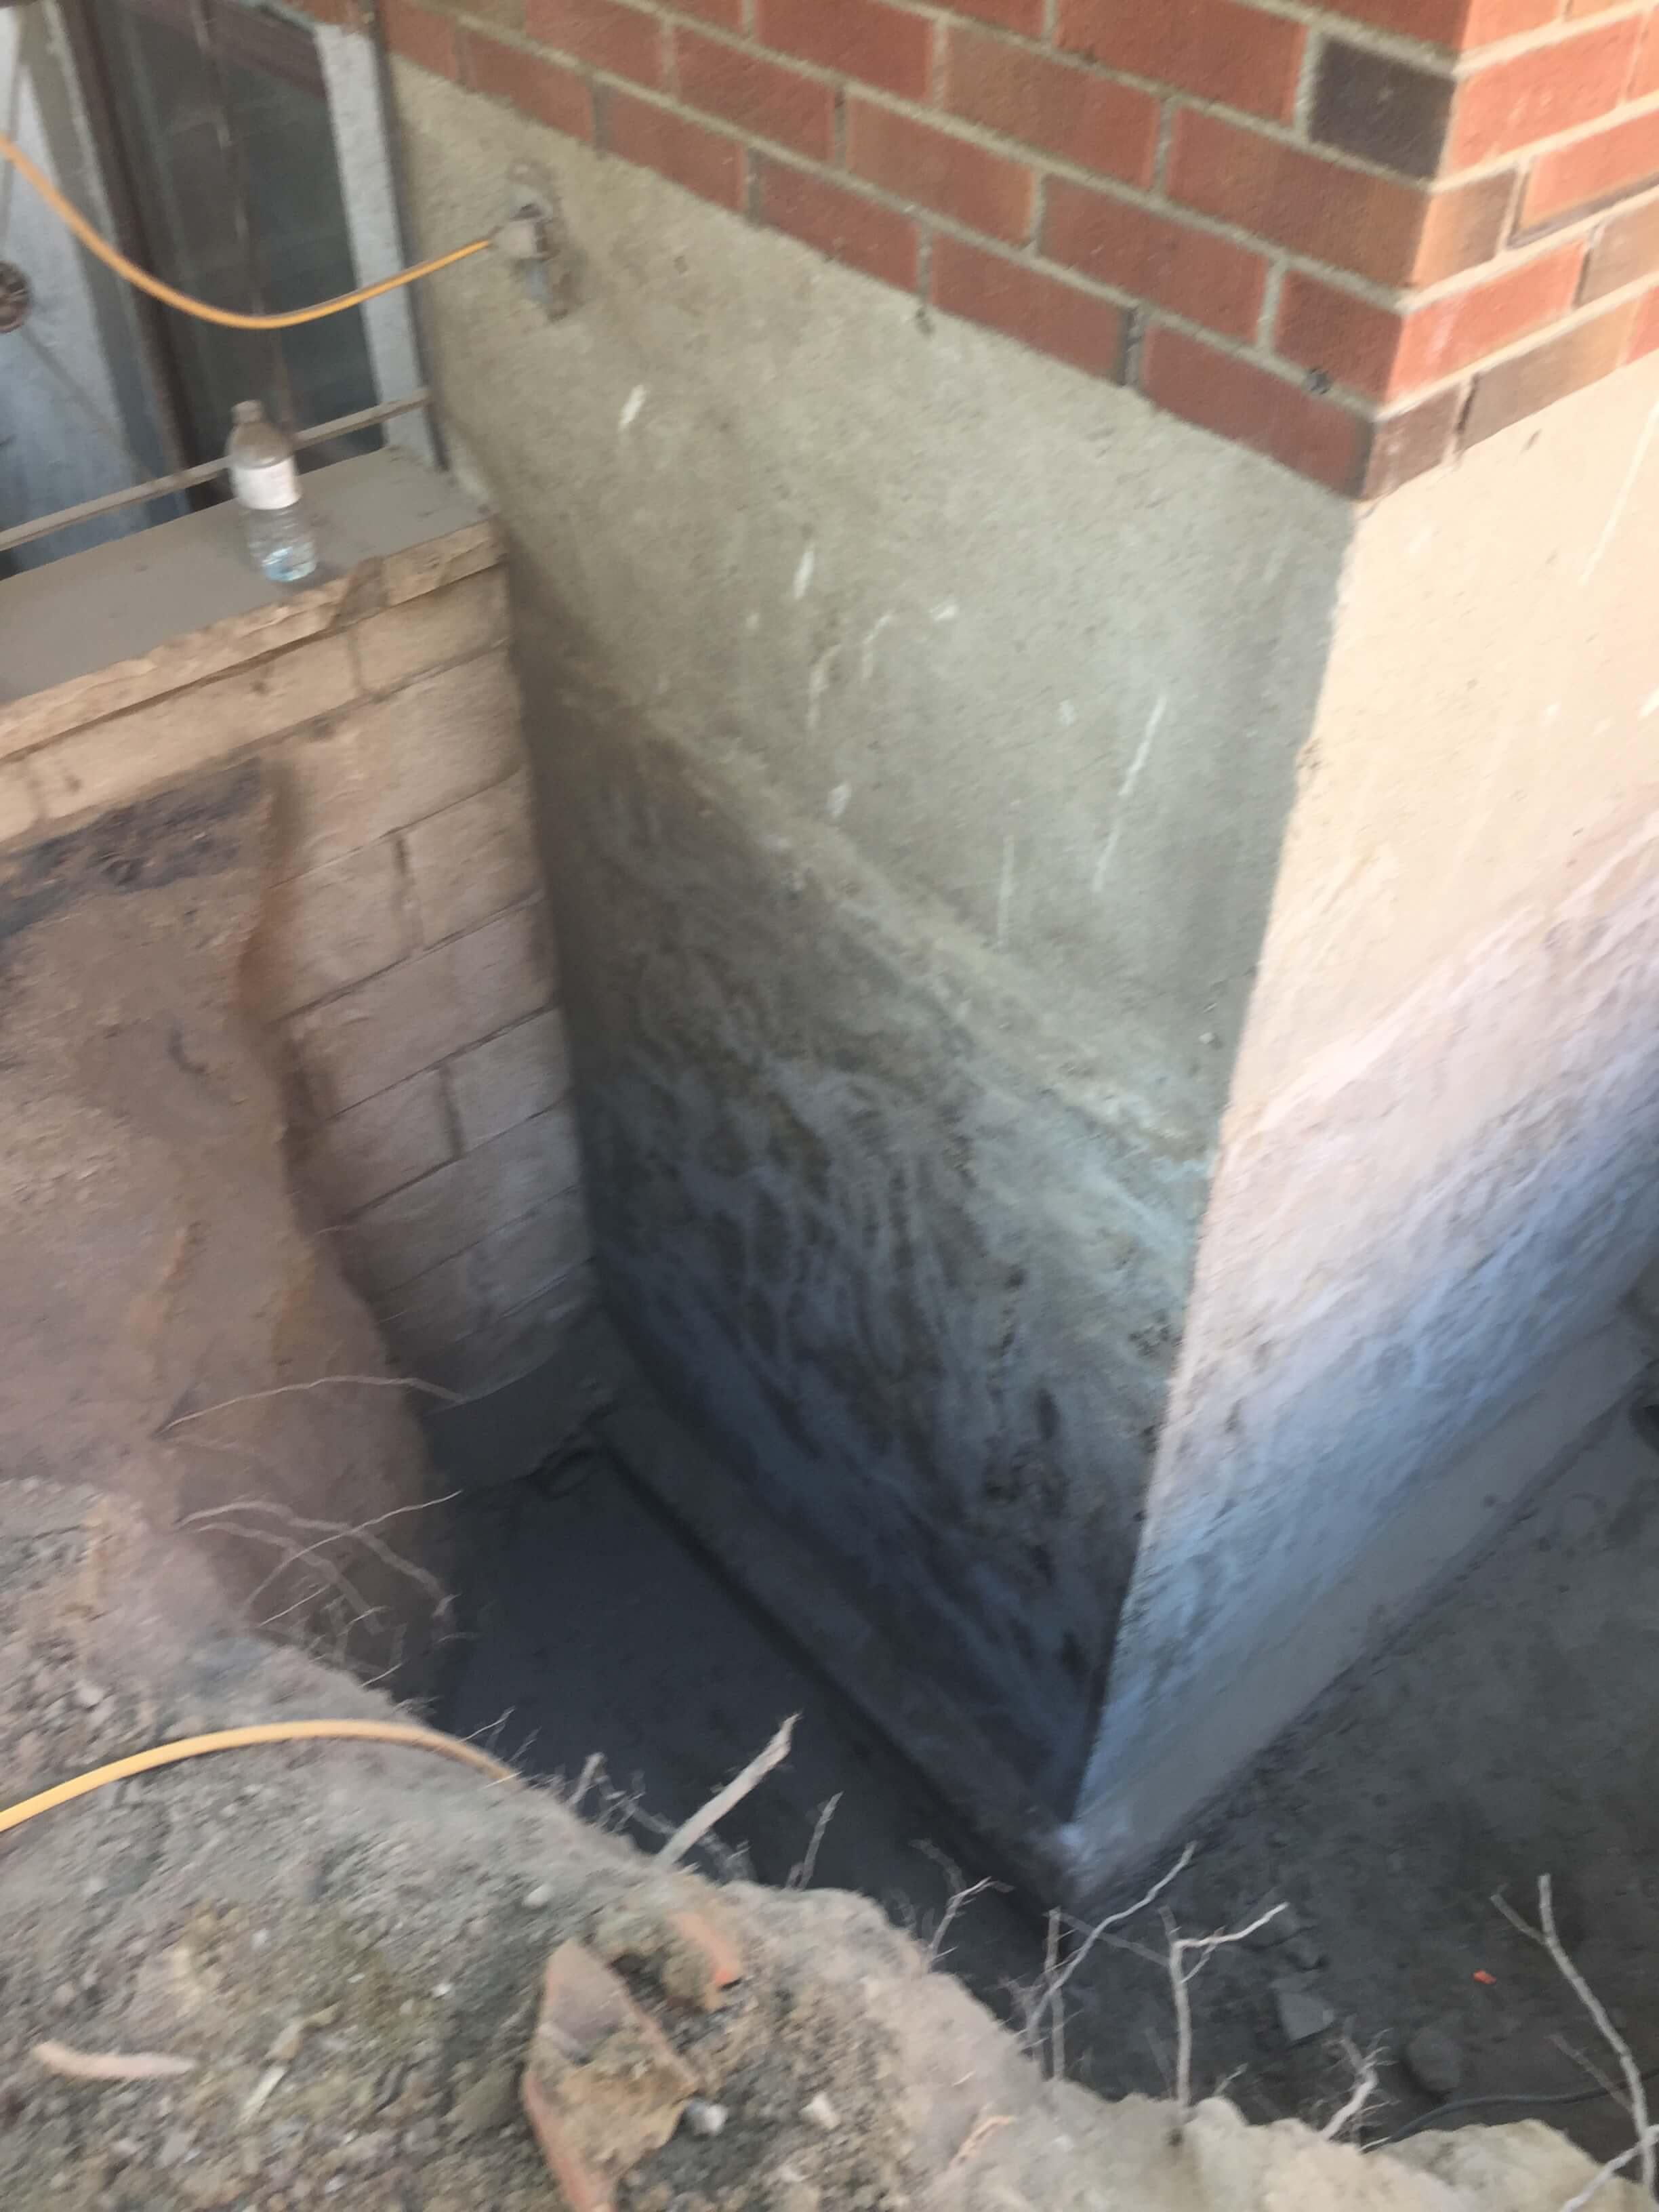 Waterproofing-Contractor-Toronto-Scarborough-Citadel-Dr-4